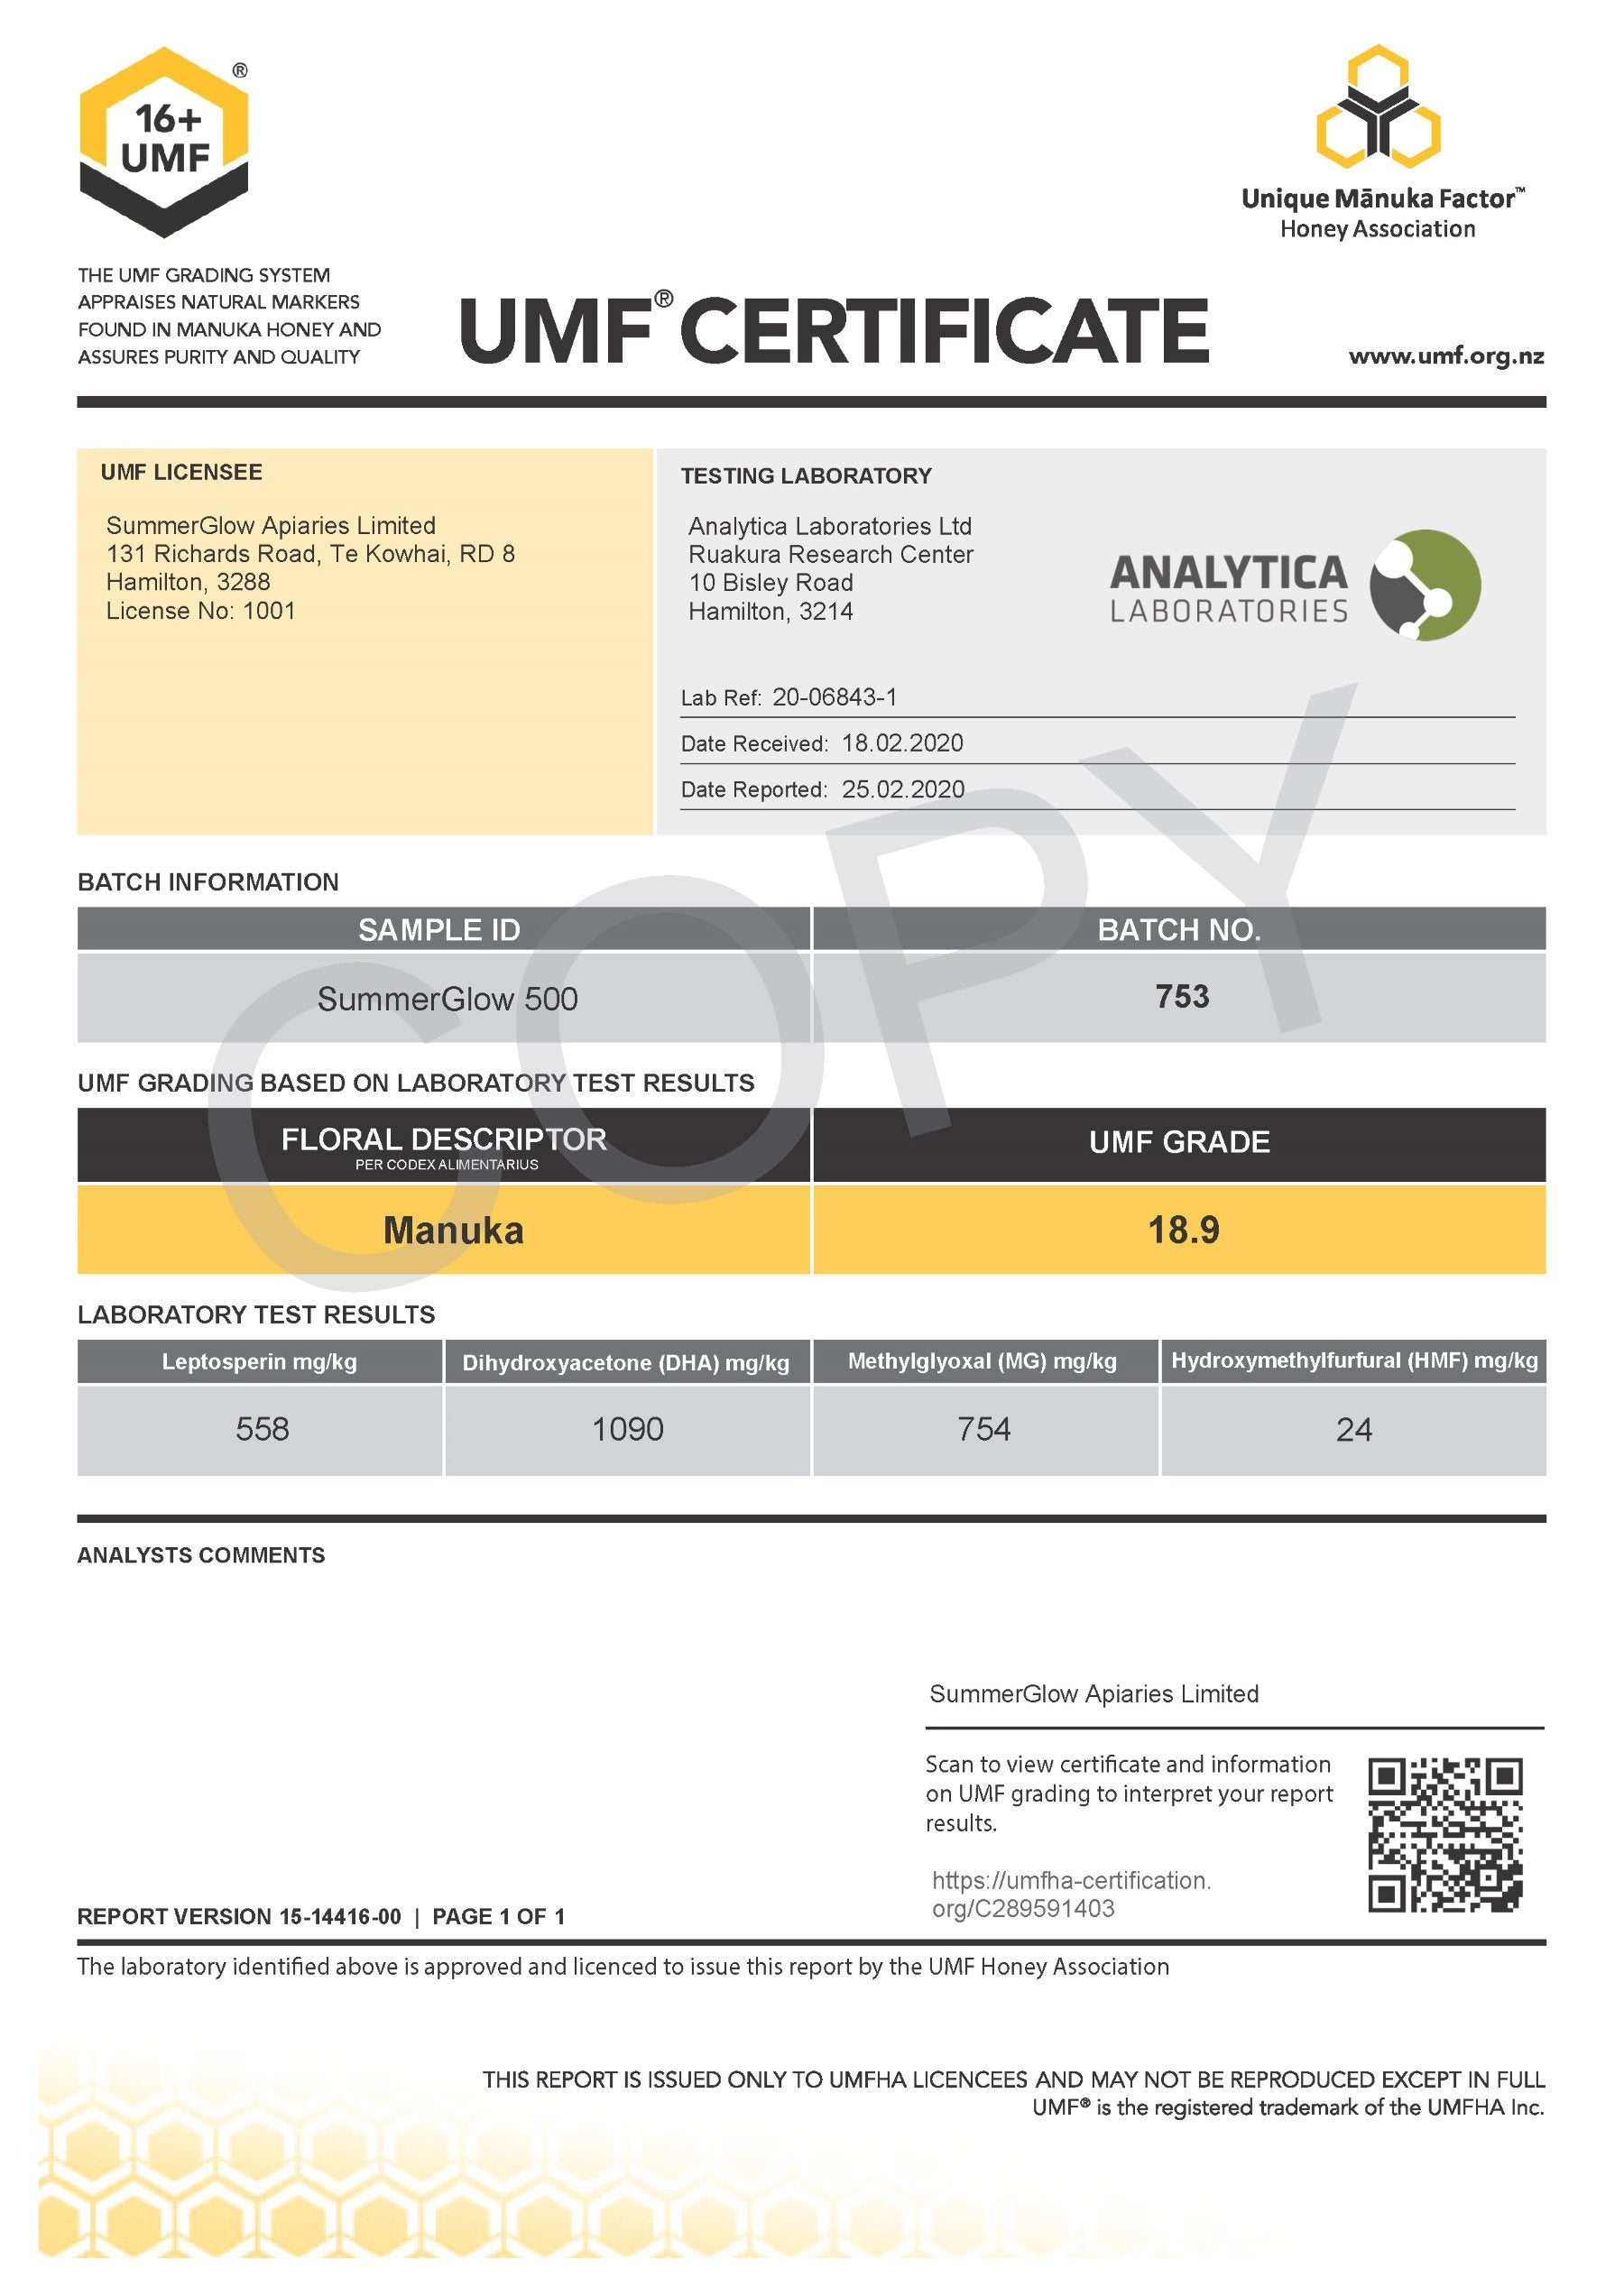 Official 16+UMF® Certificate Verifies SummerGlow Authenticity